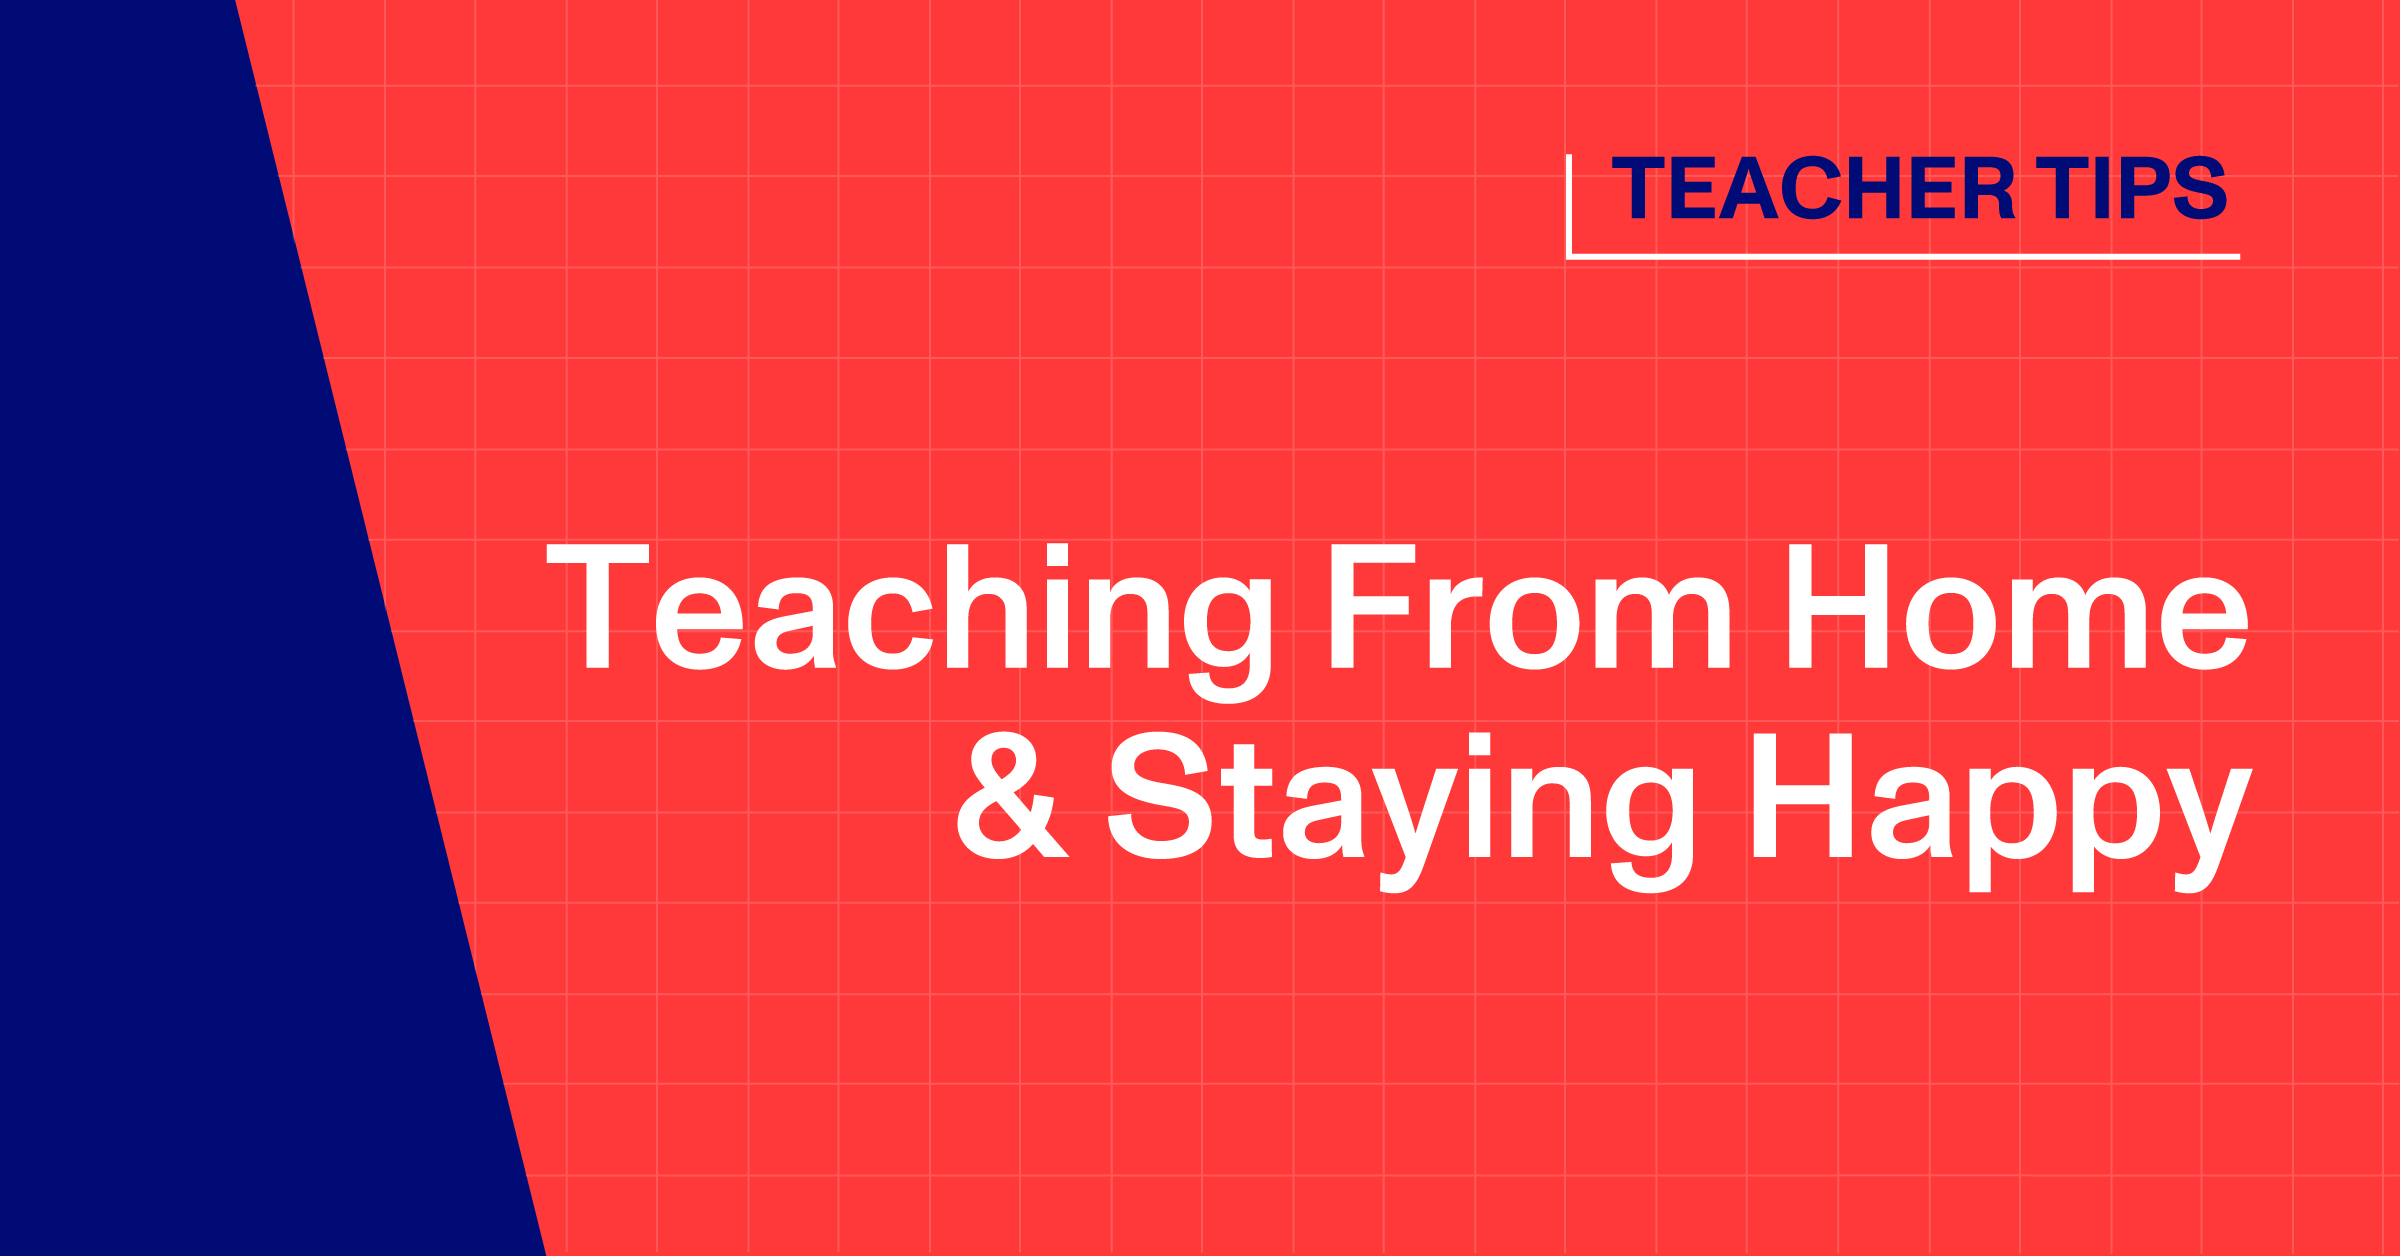 Teaching From Home & Staying Happy